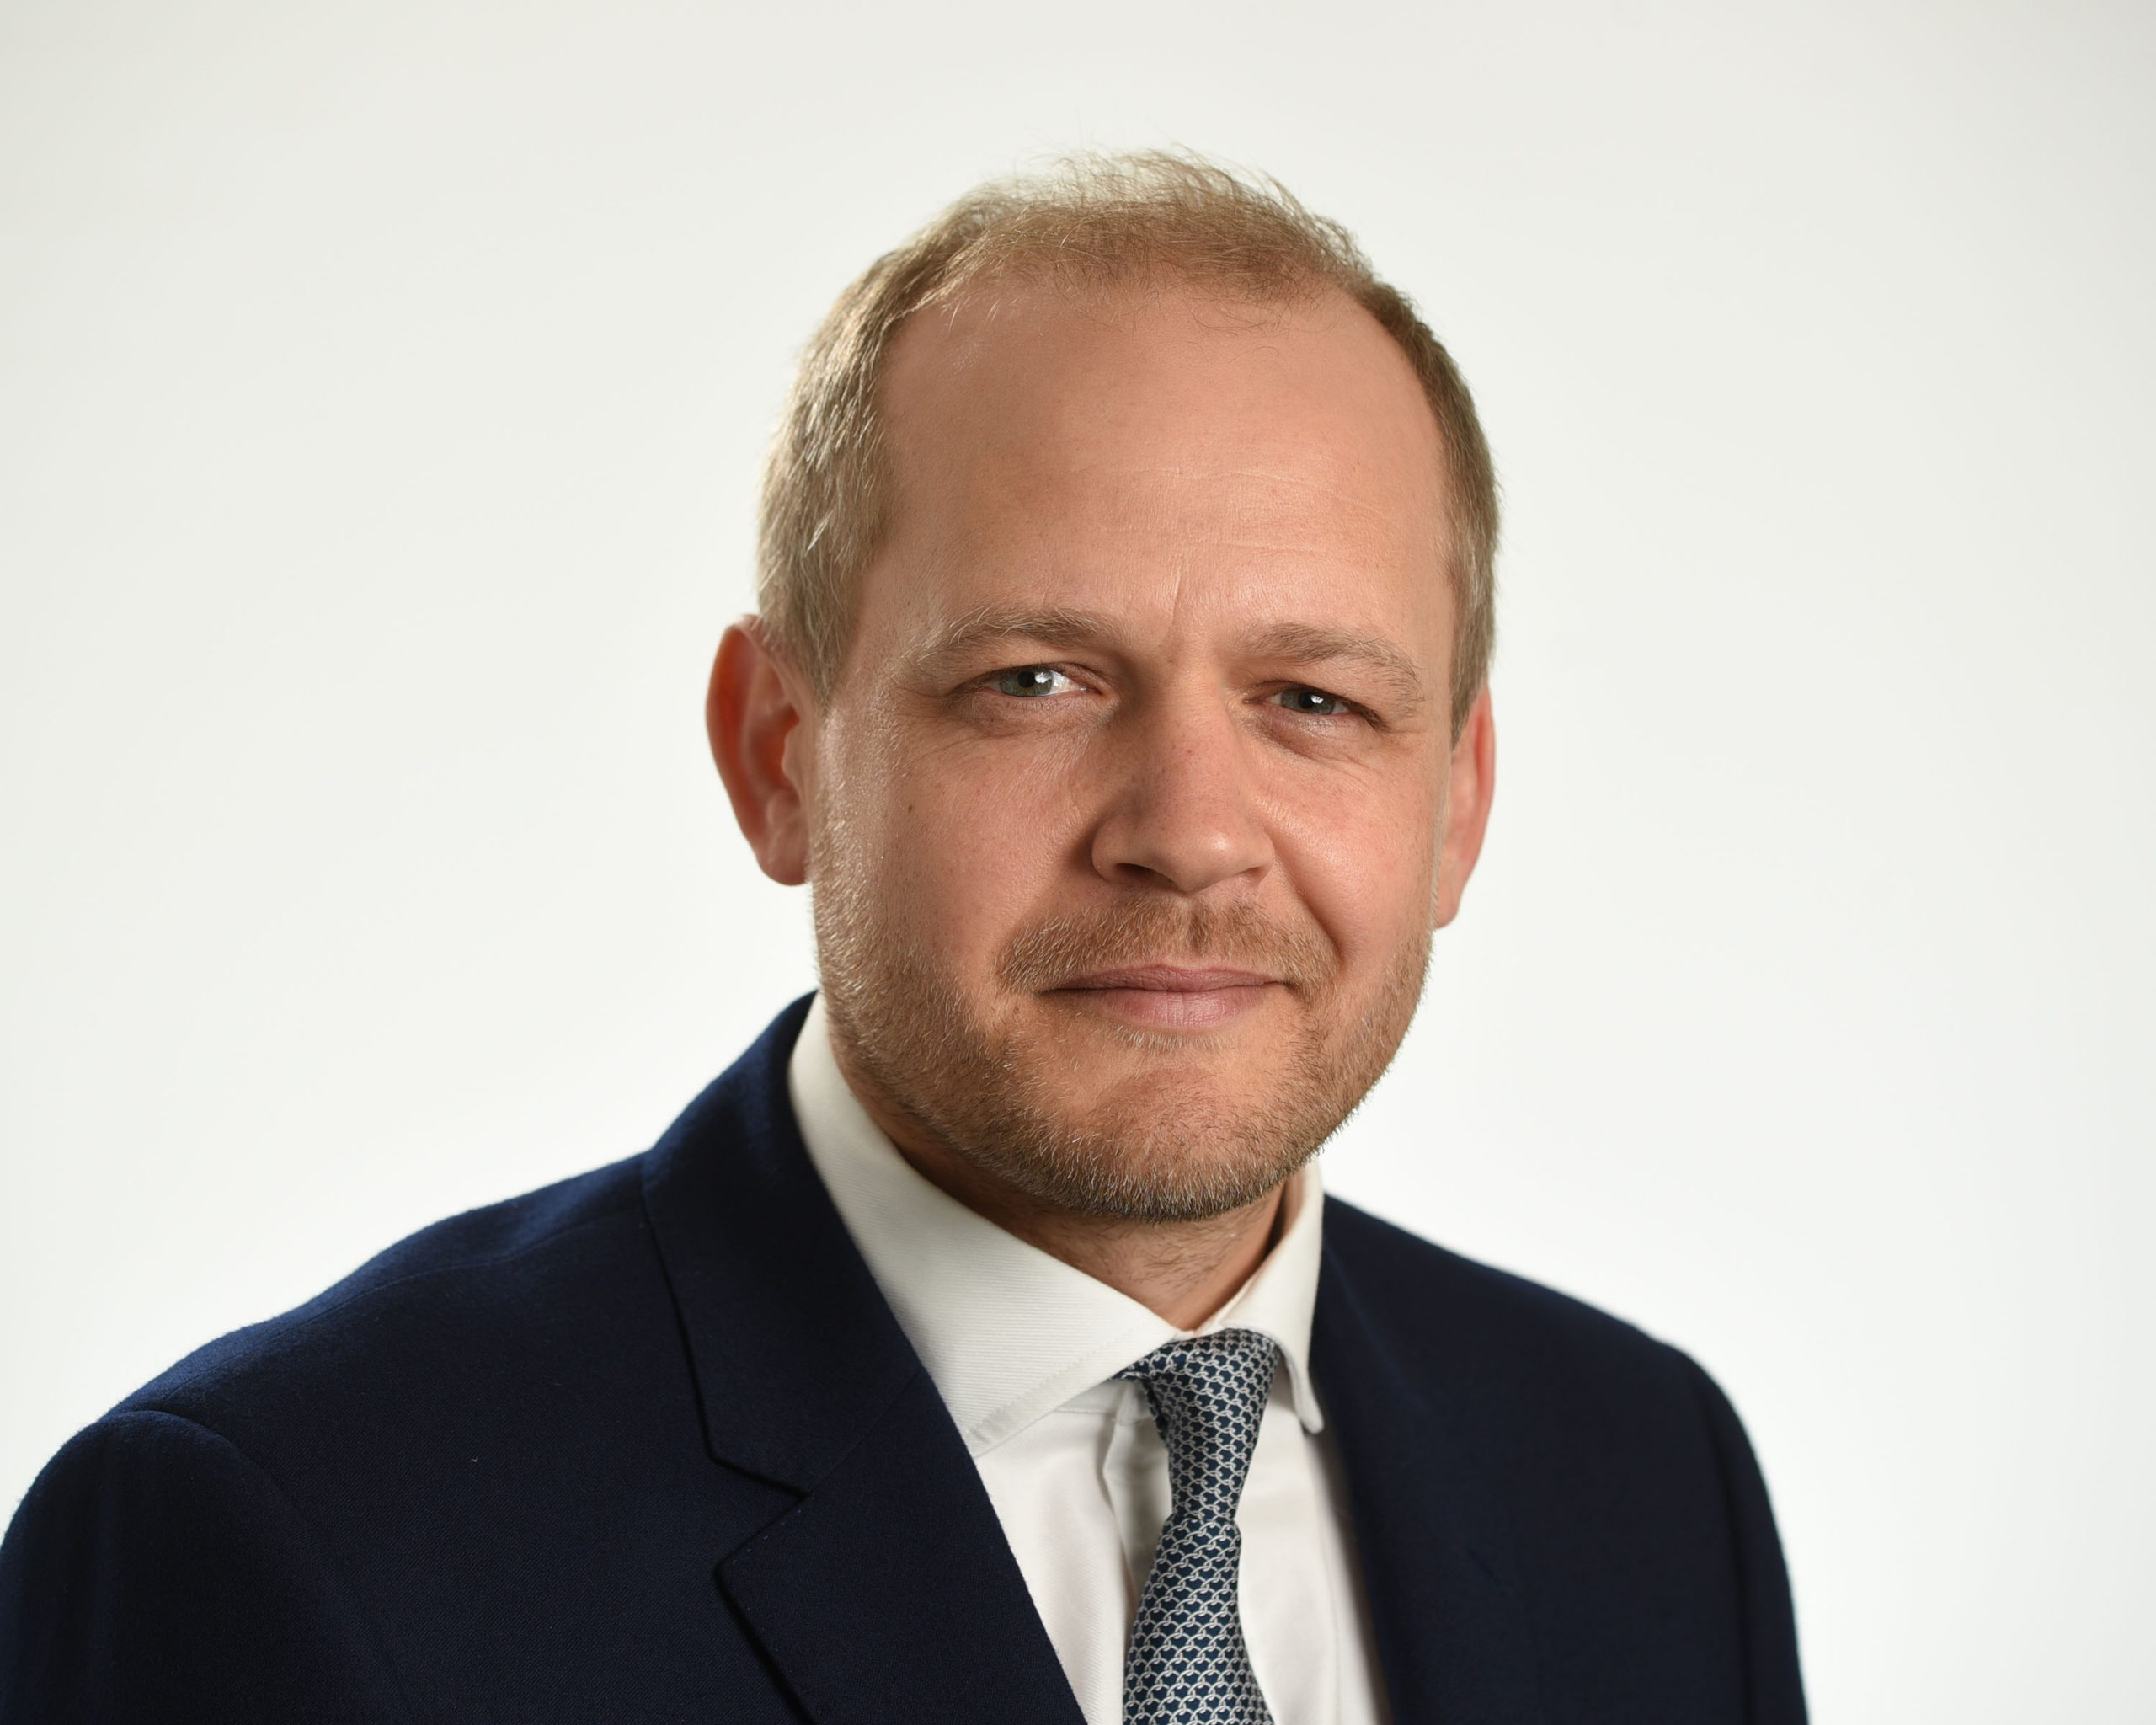 Grundon appoints Philip Atkinson to Board of Directors